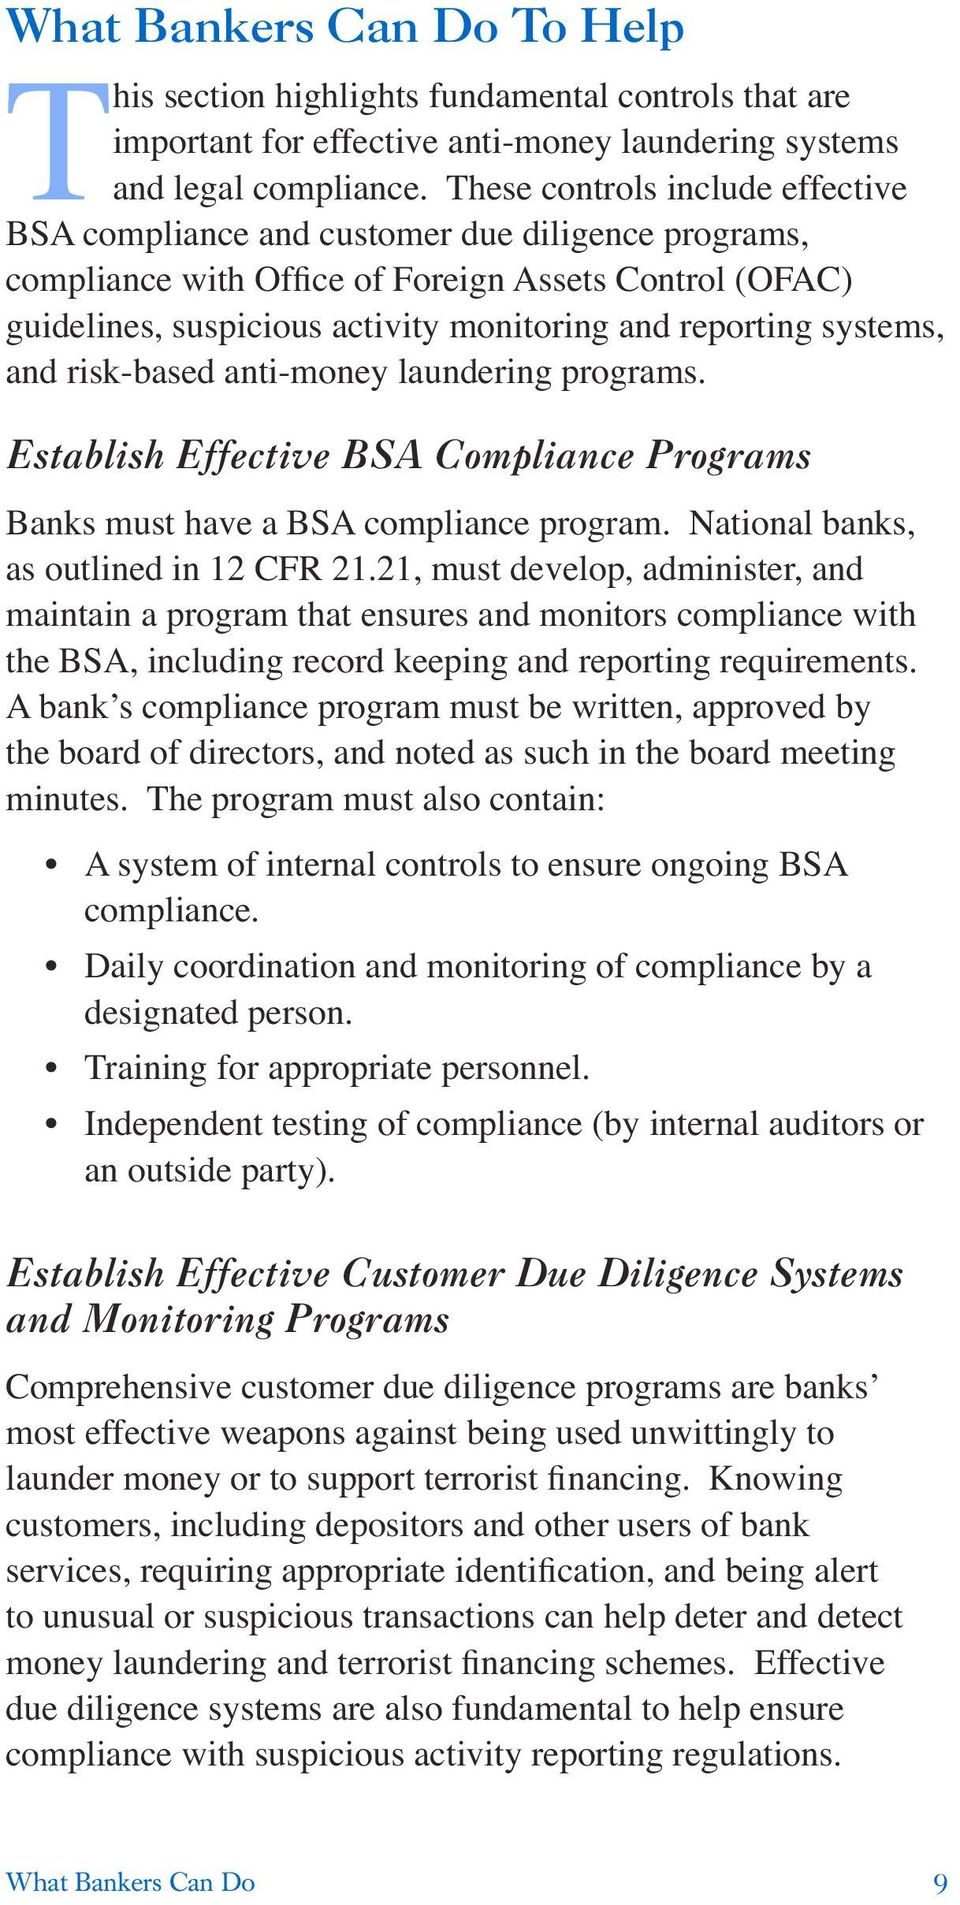 systems, and risk-based anti-money laundering programs. Establish Effective BSA Compliance Programs Banks must have a BSA compliance program. National banks, as outlined in 12 CFR 21.